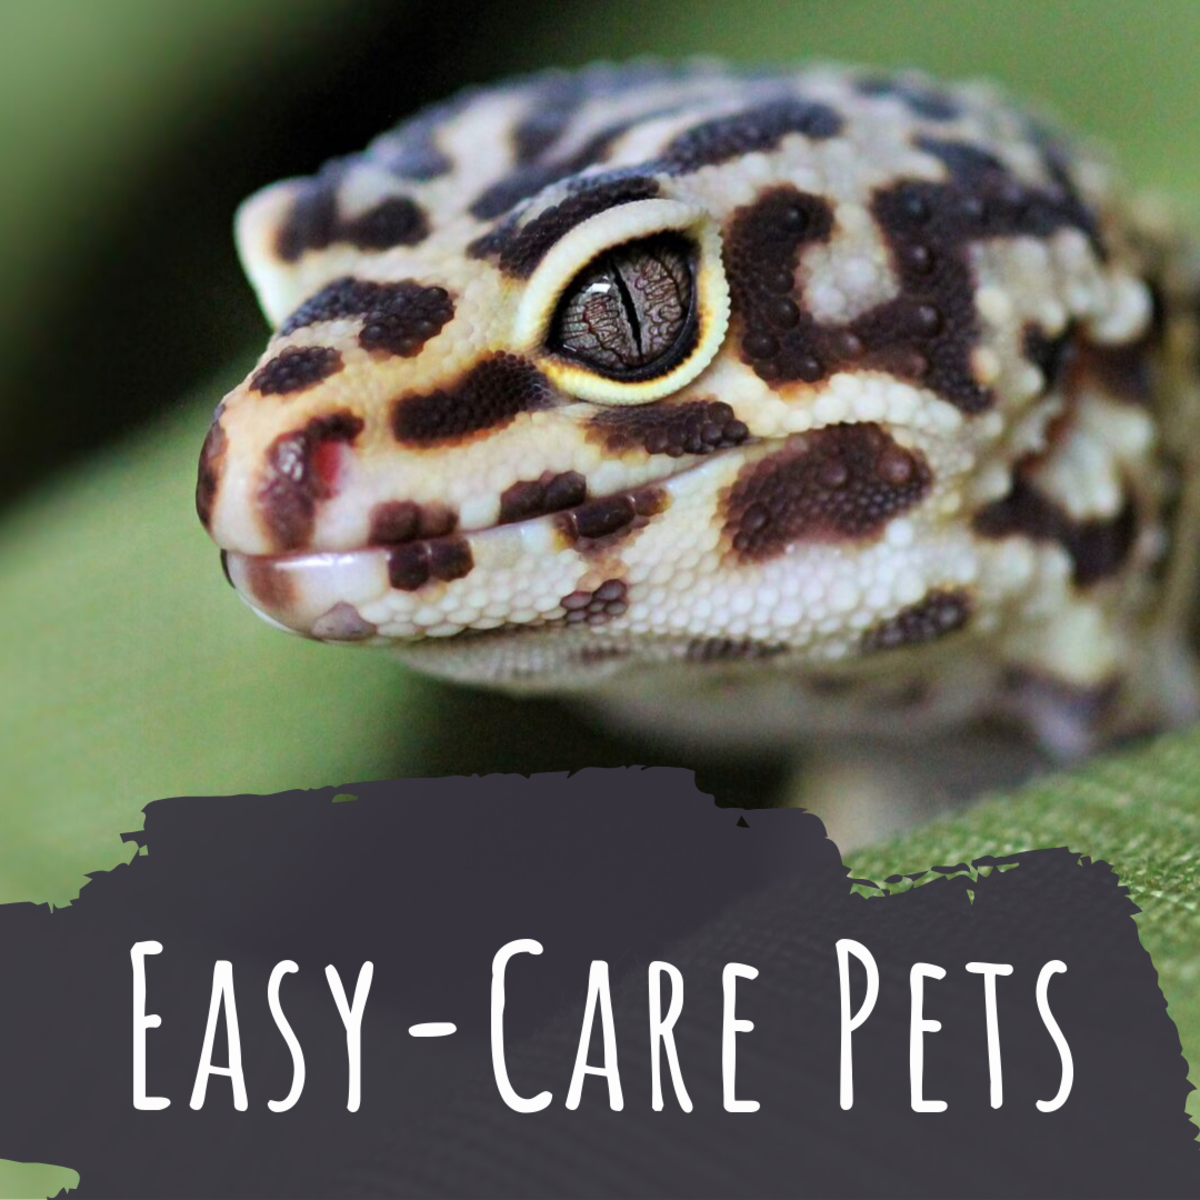 10 Small, Low-Maintenance Pets That Are Easy to Take Care Of